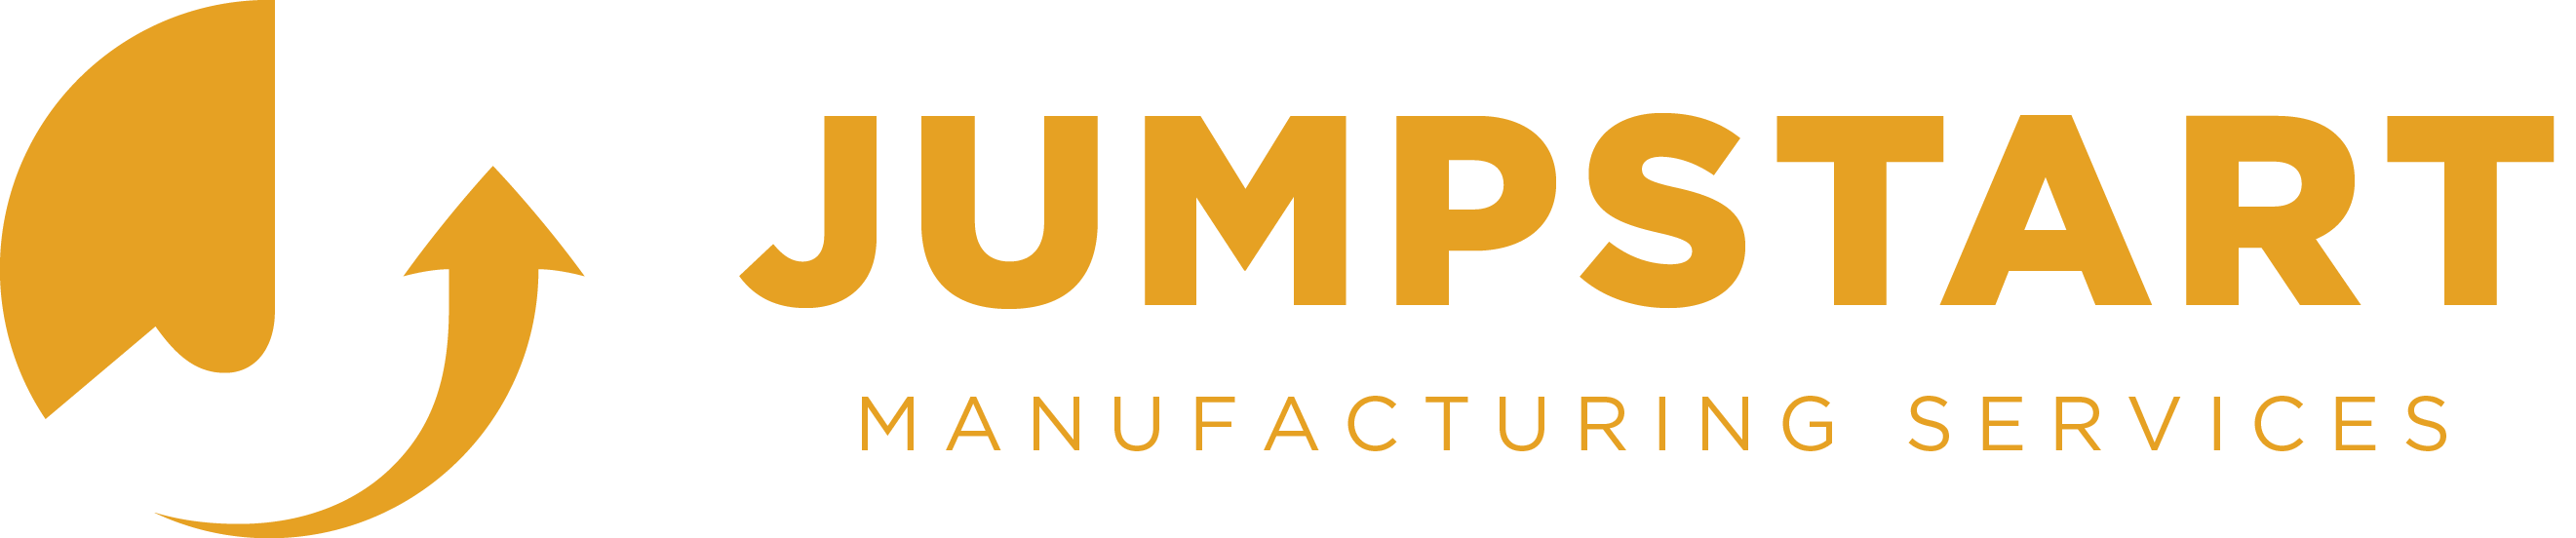 Jumpstart_logo_final